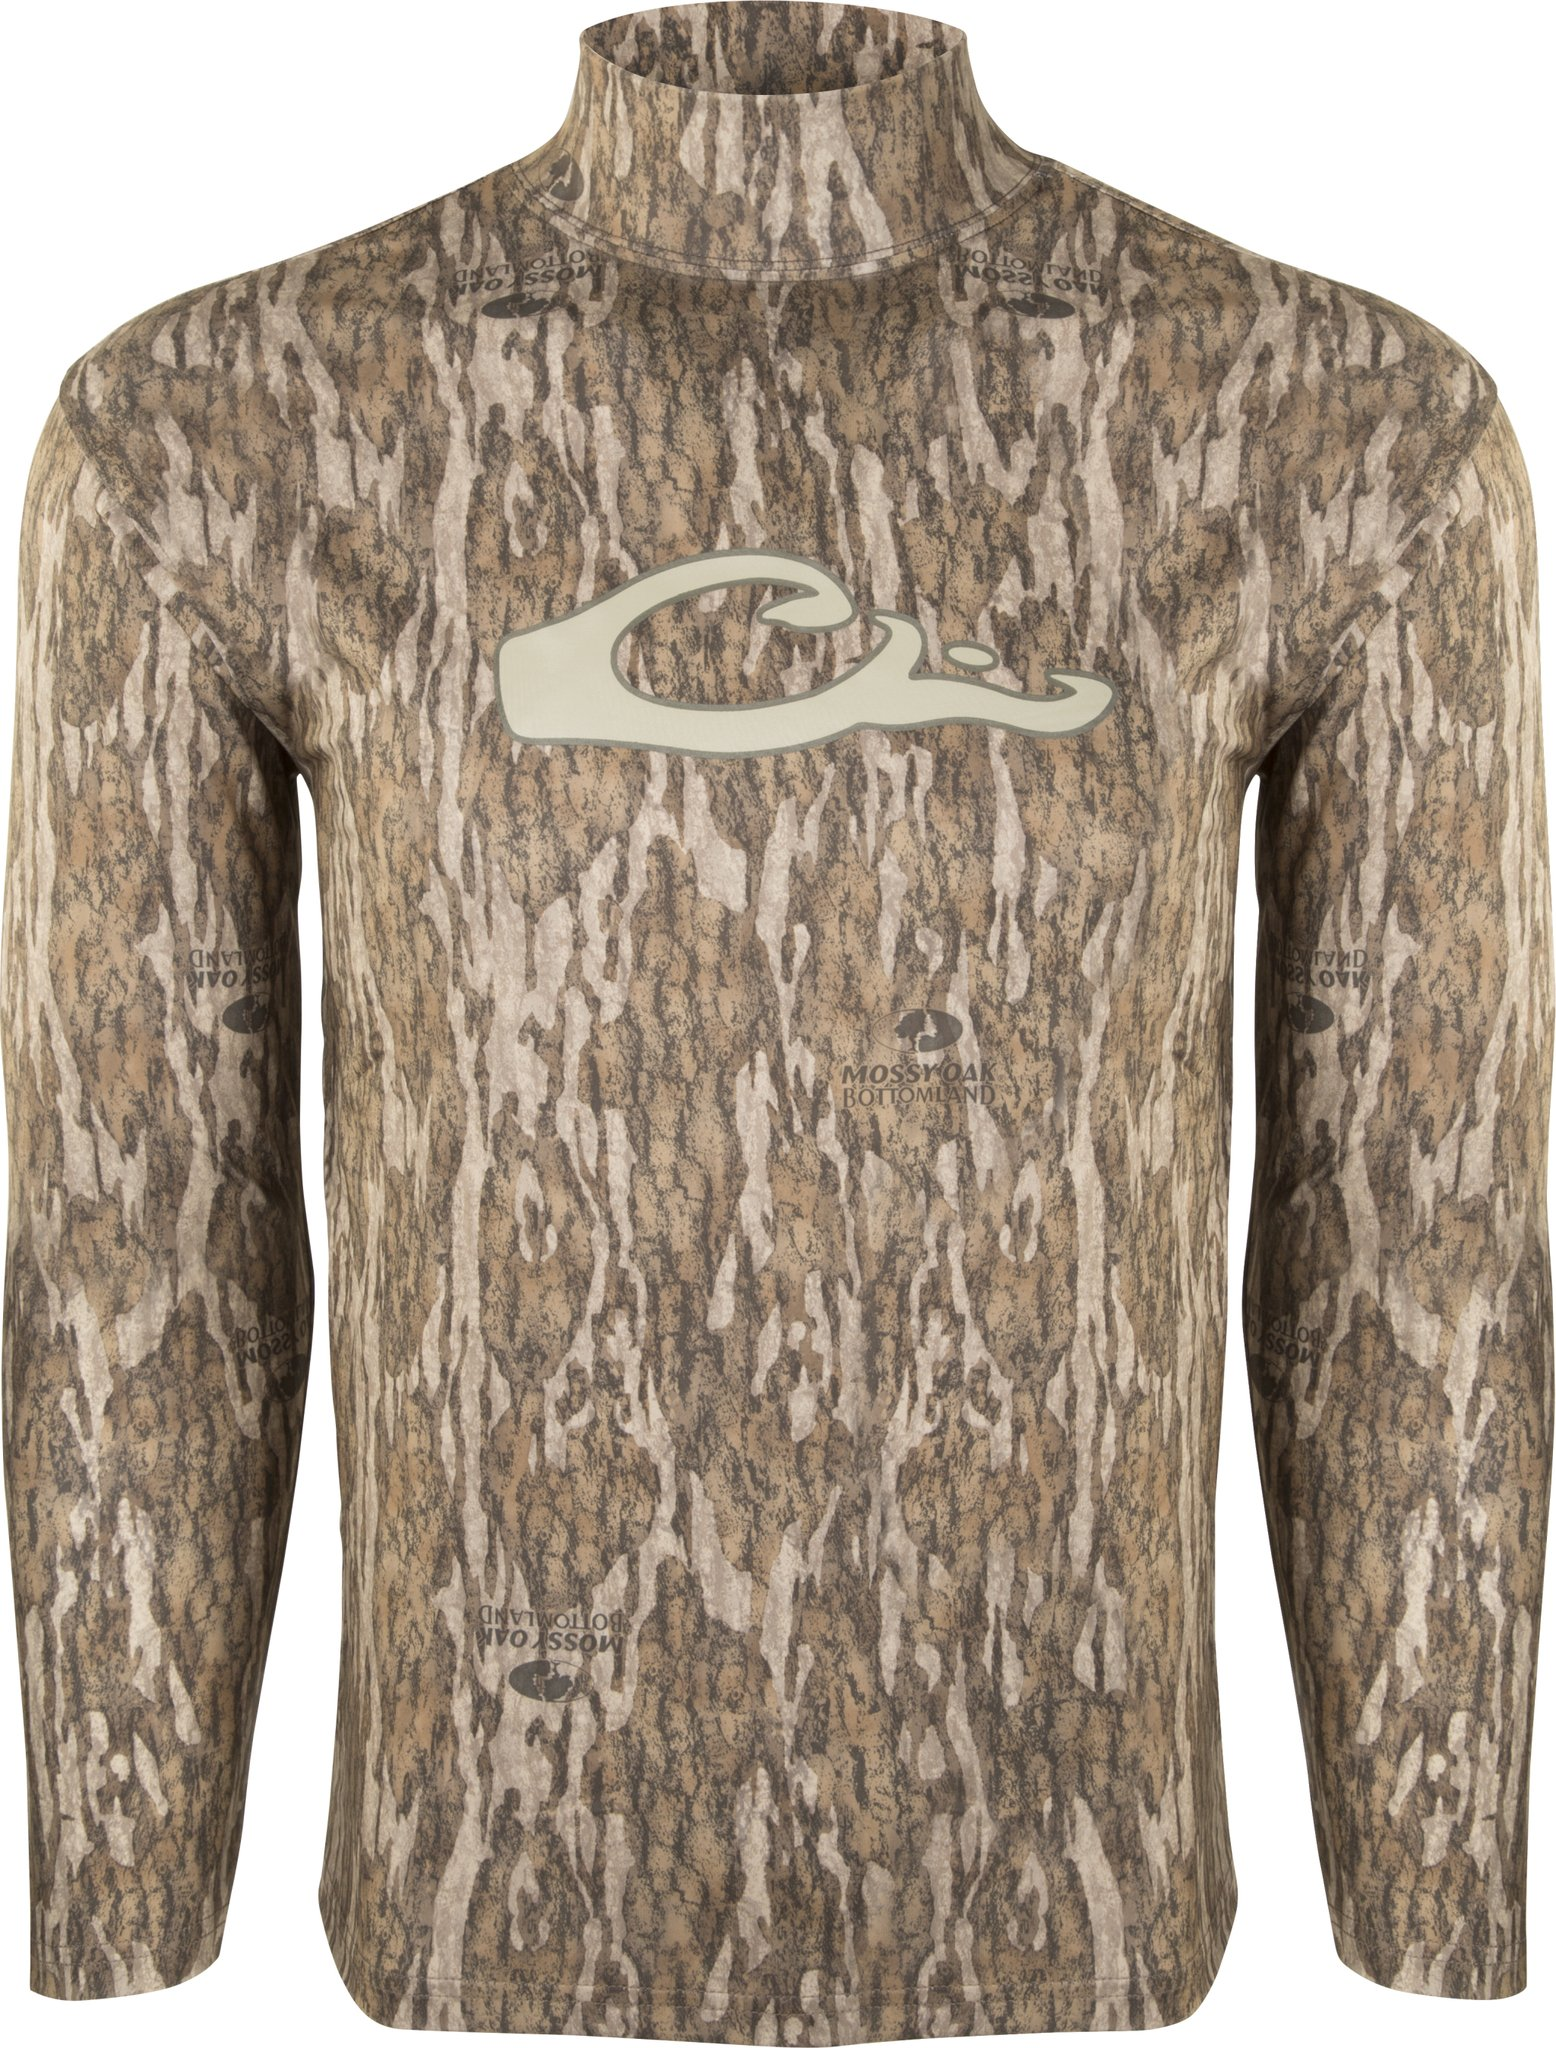 Drake Waterfowl Men's EST Performance Long Sleeve Top (X-Large, Mossy Oak Bottomland) by Drake